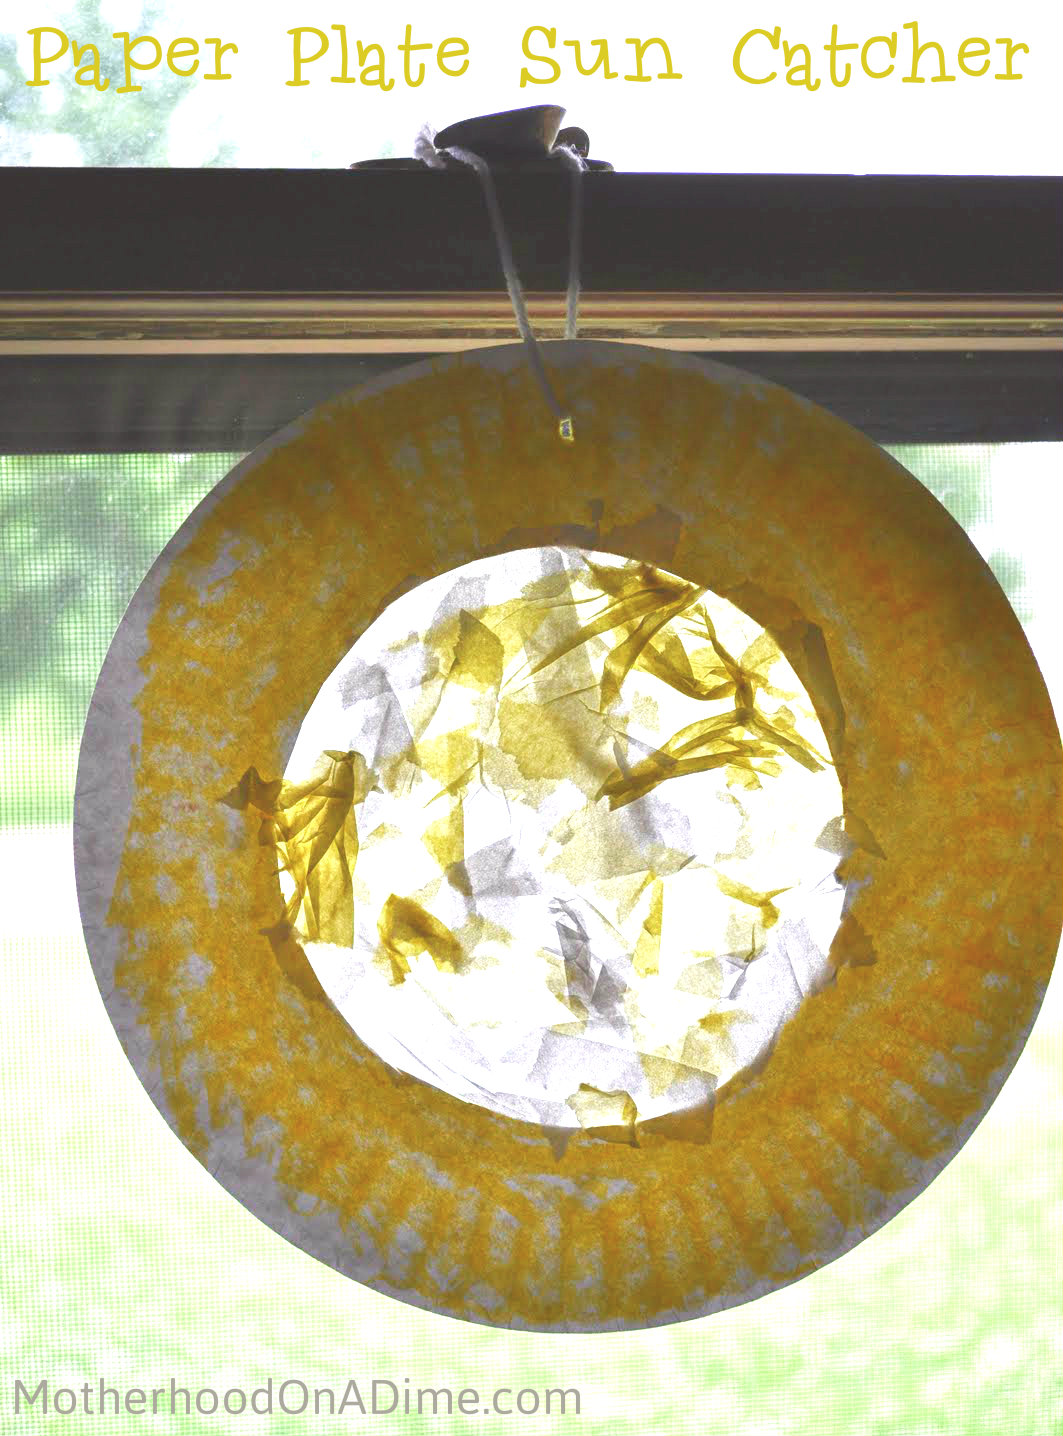 Paper Plate Sun Catcher - Kids Activities | Saving Money | Home Management | Motherhood on a Dime : activities with paper plates - pezcame.com